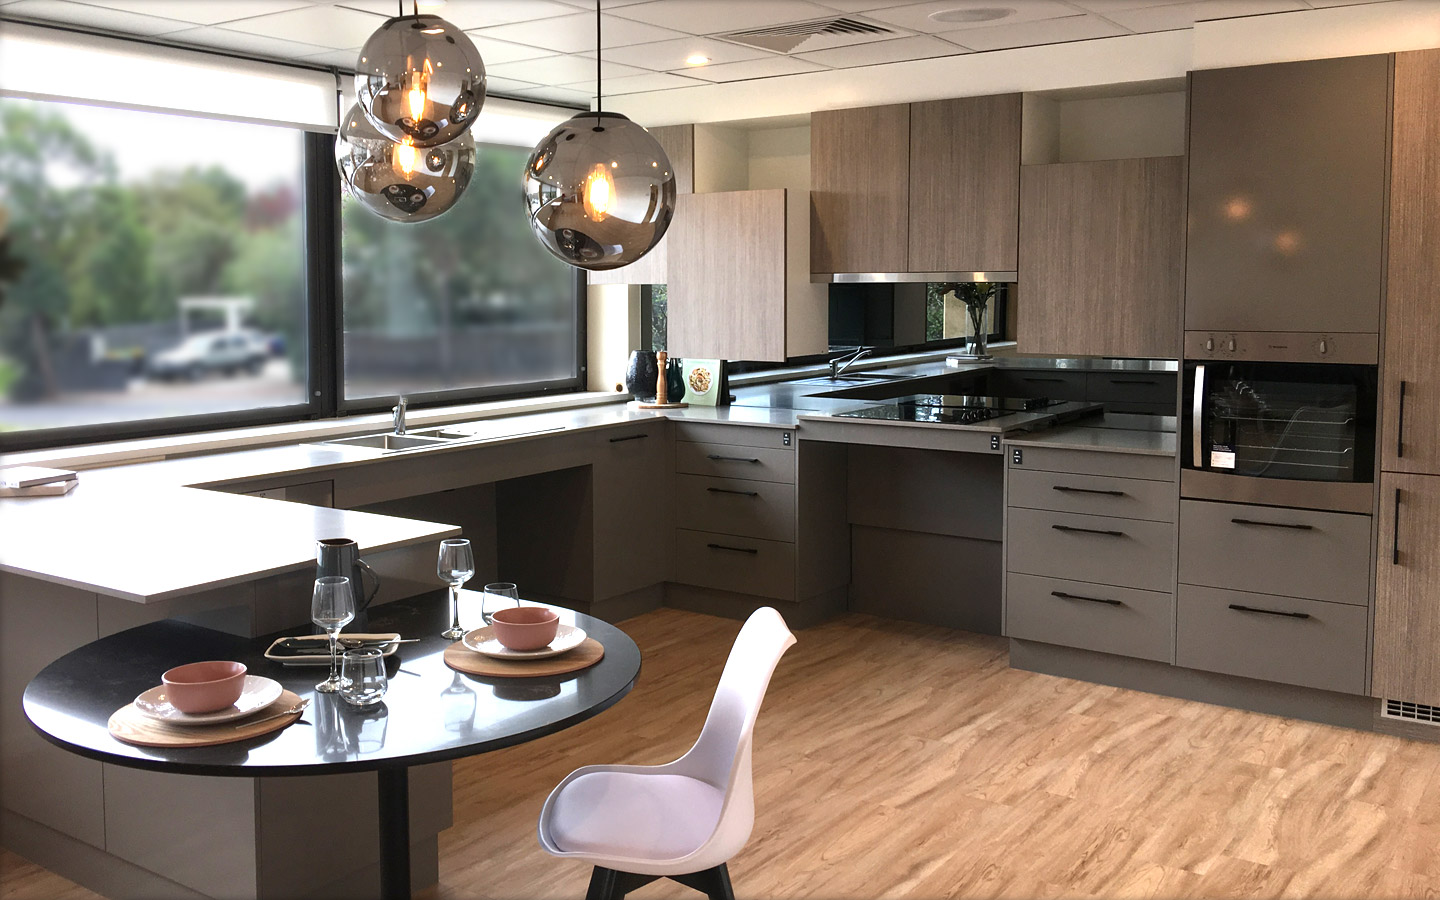 Image of an accessible kitchen design